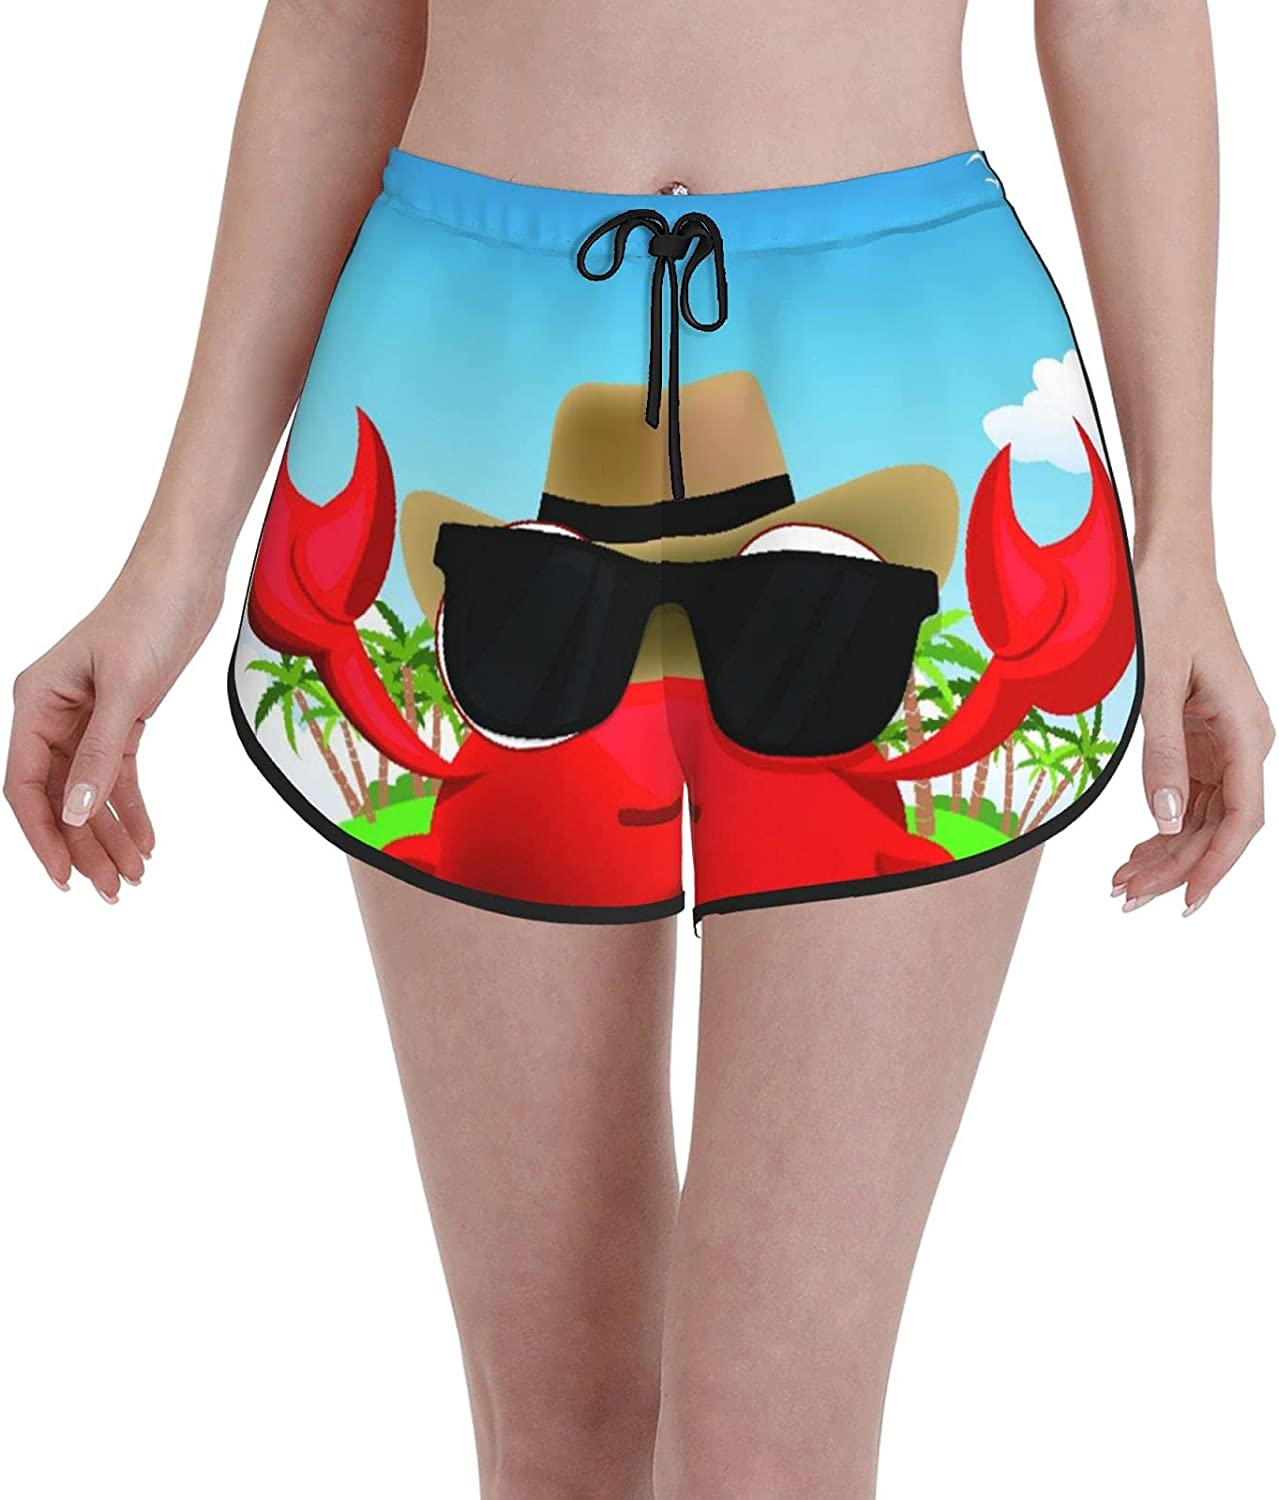 Women's Girl's Swim Trunks,Cool Crustacean with Black Sunglasses and A Hat Summer Vacation On Tropical Island,Beachwear Swimsuits Board Shorts Bathing Suits,M